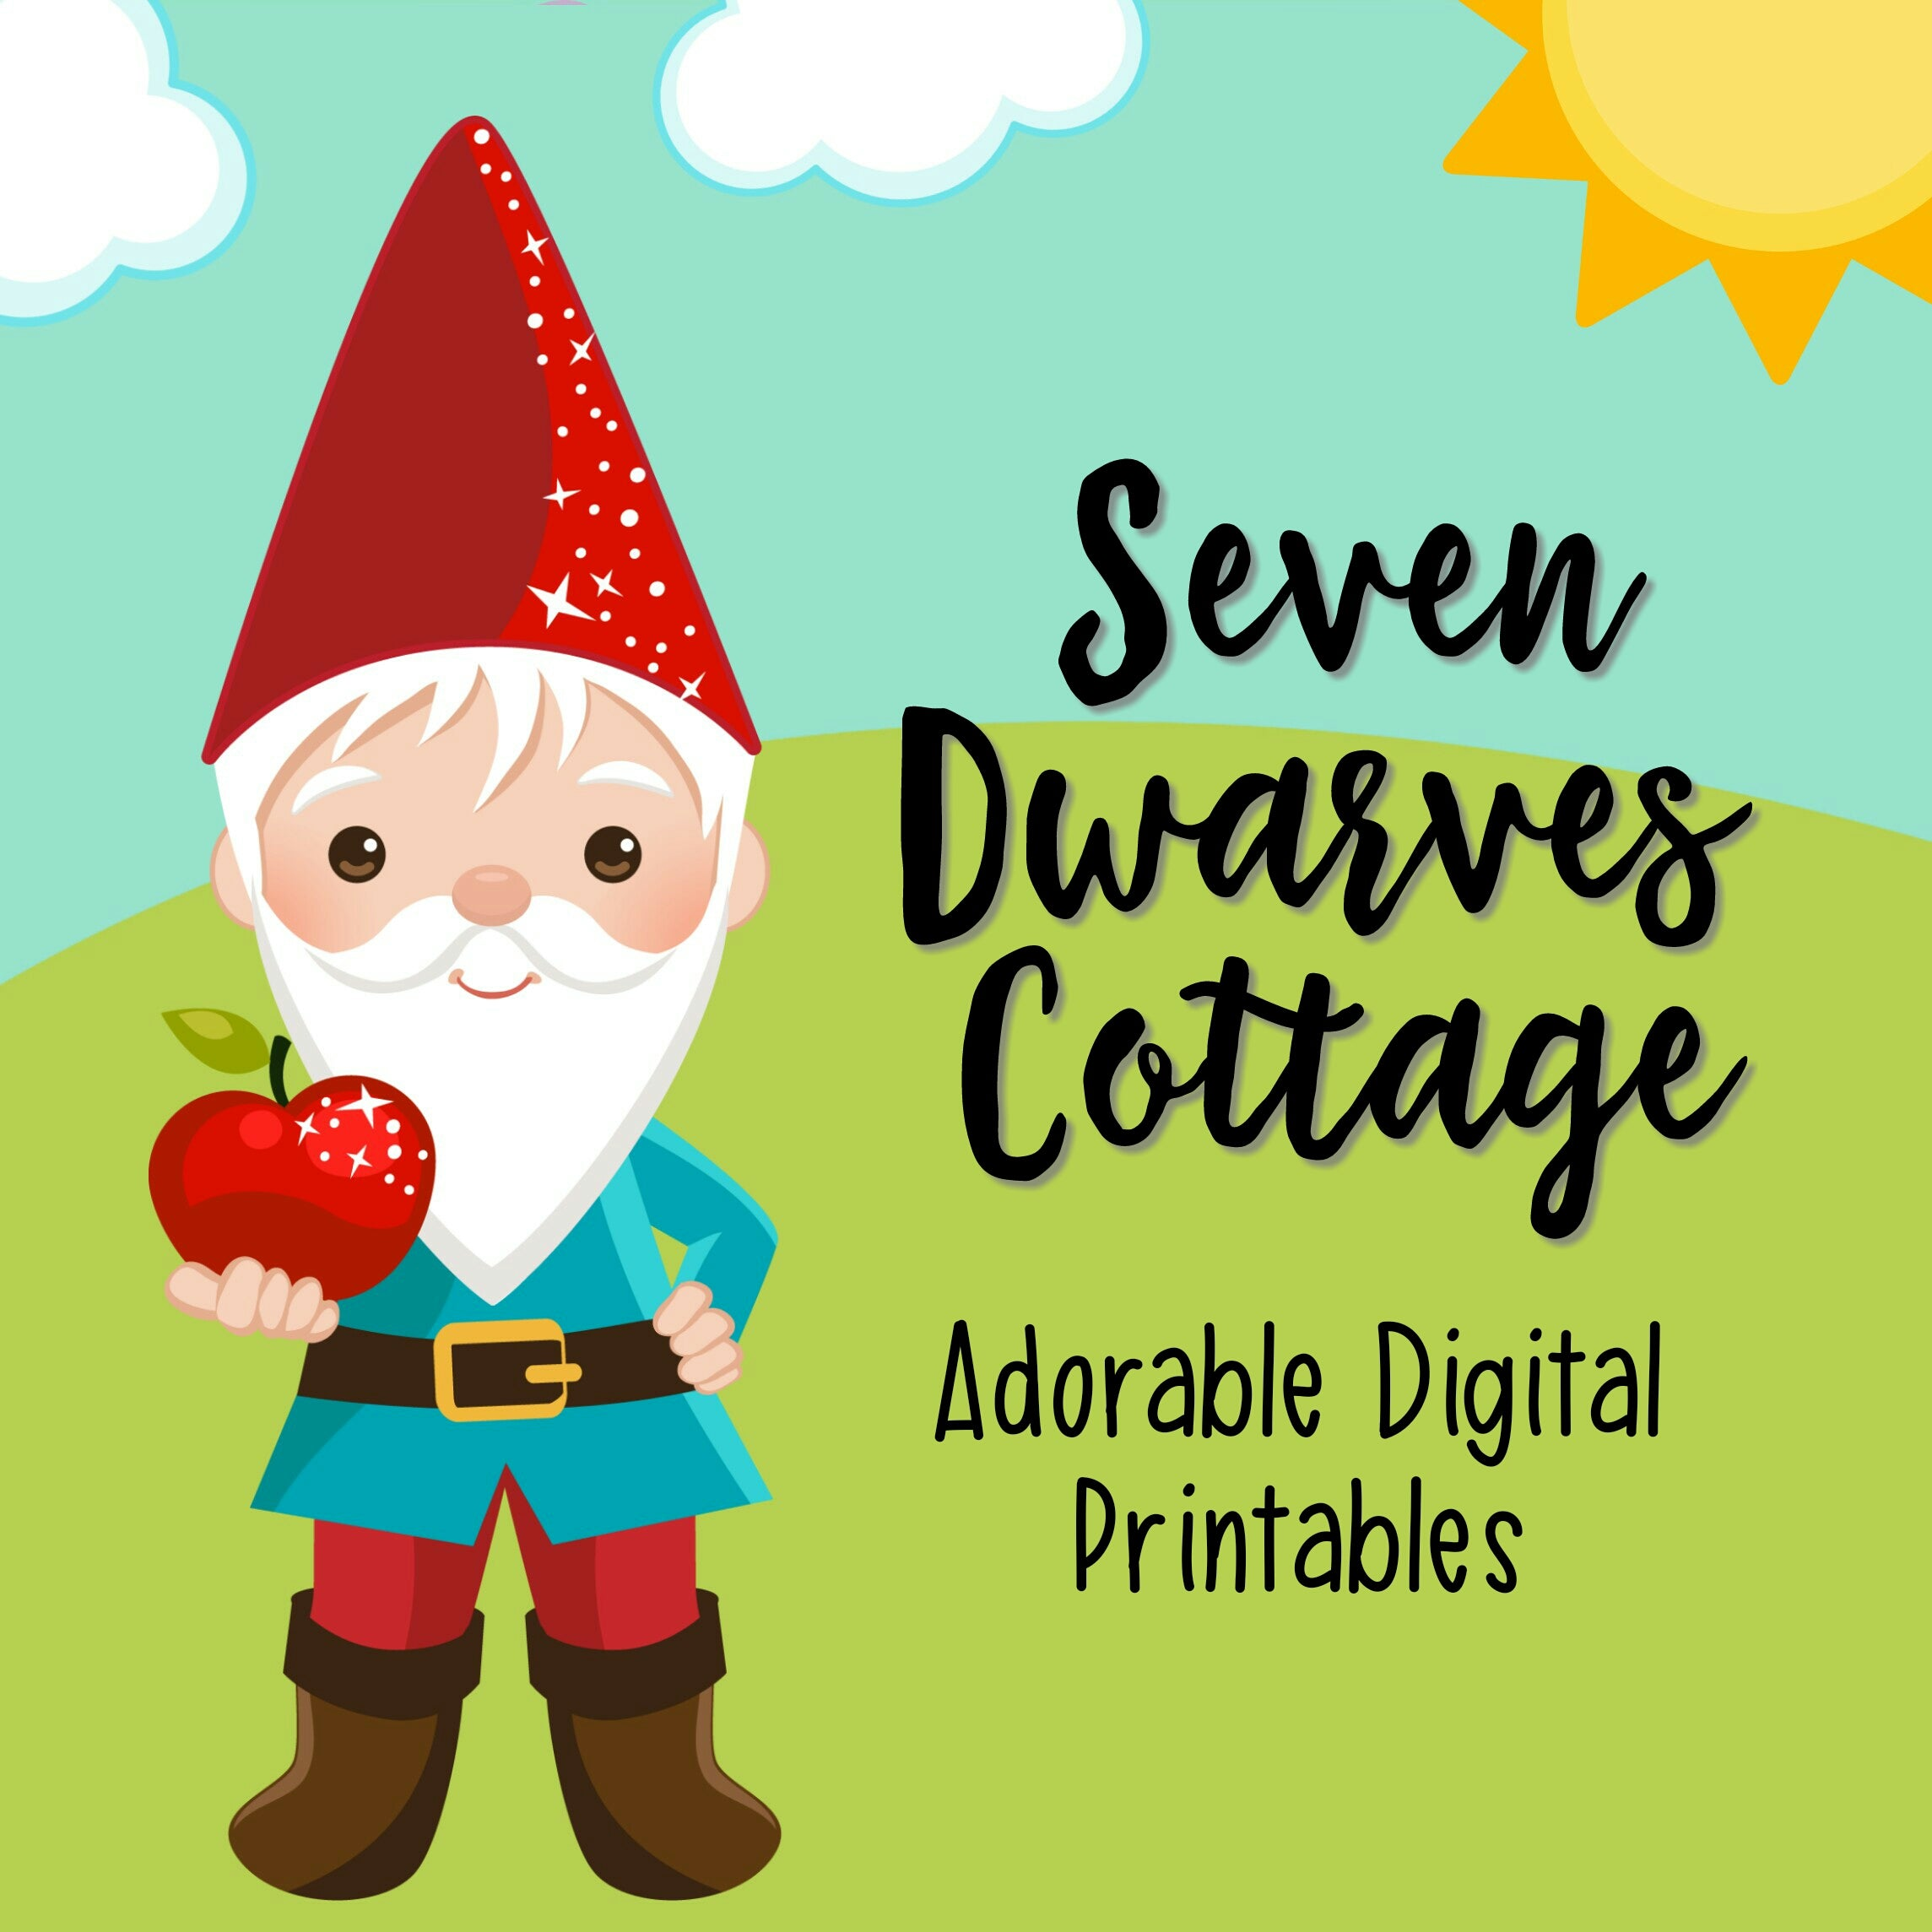 DIGITAL PRINTABLES